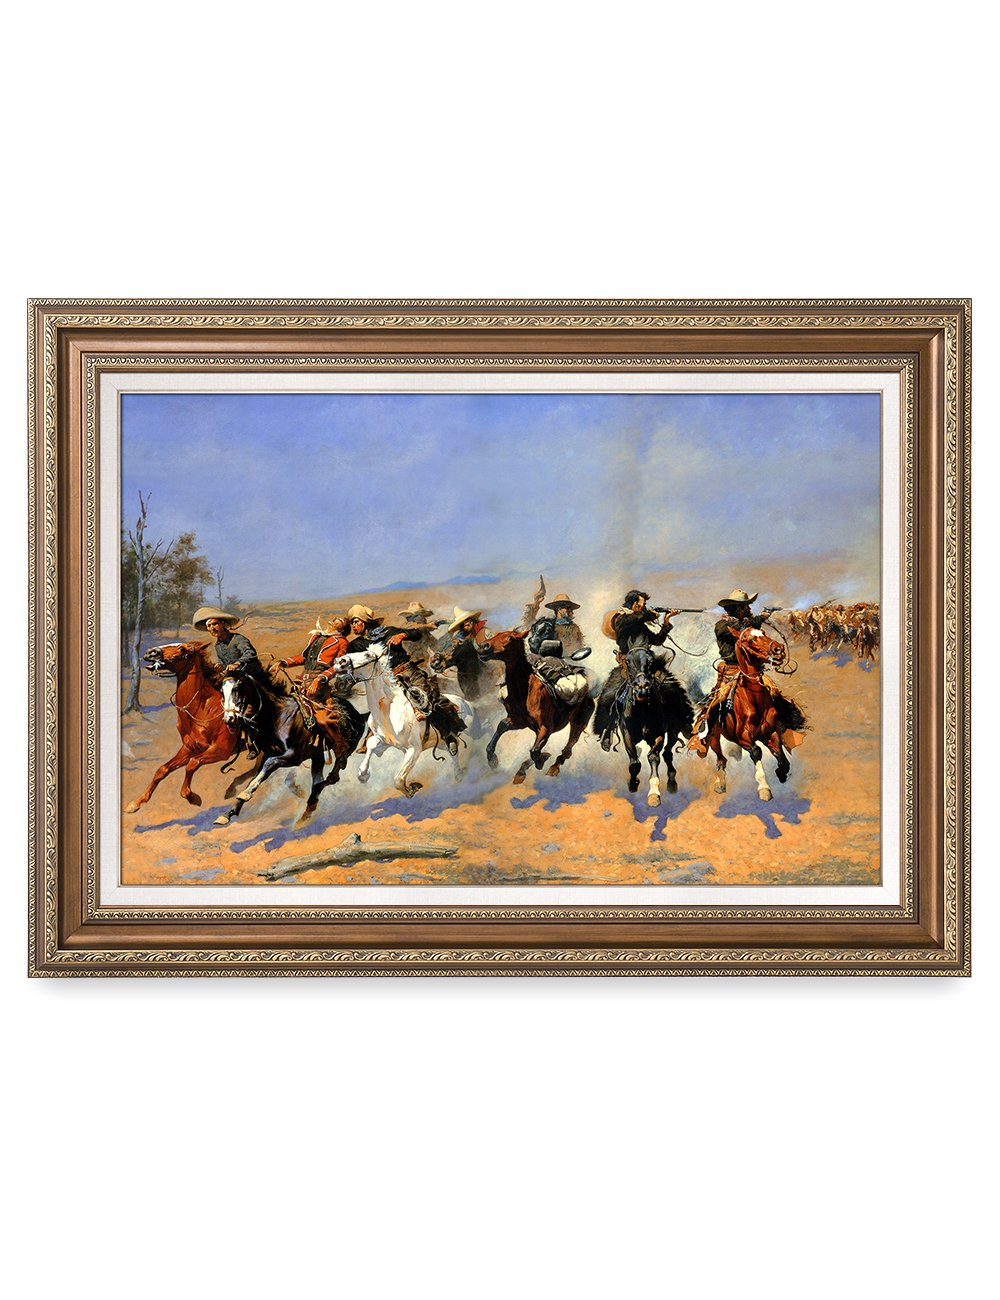 DecorArts - A Dash for the Timber, Frederic Remington Classic Art Reproductions. Giclee Prints& Museum Quality Framed Art for Wall Decor. Framed size: 25x35''